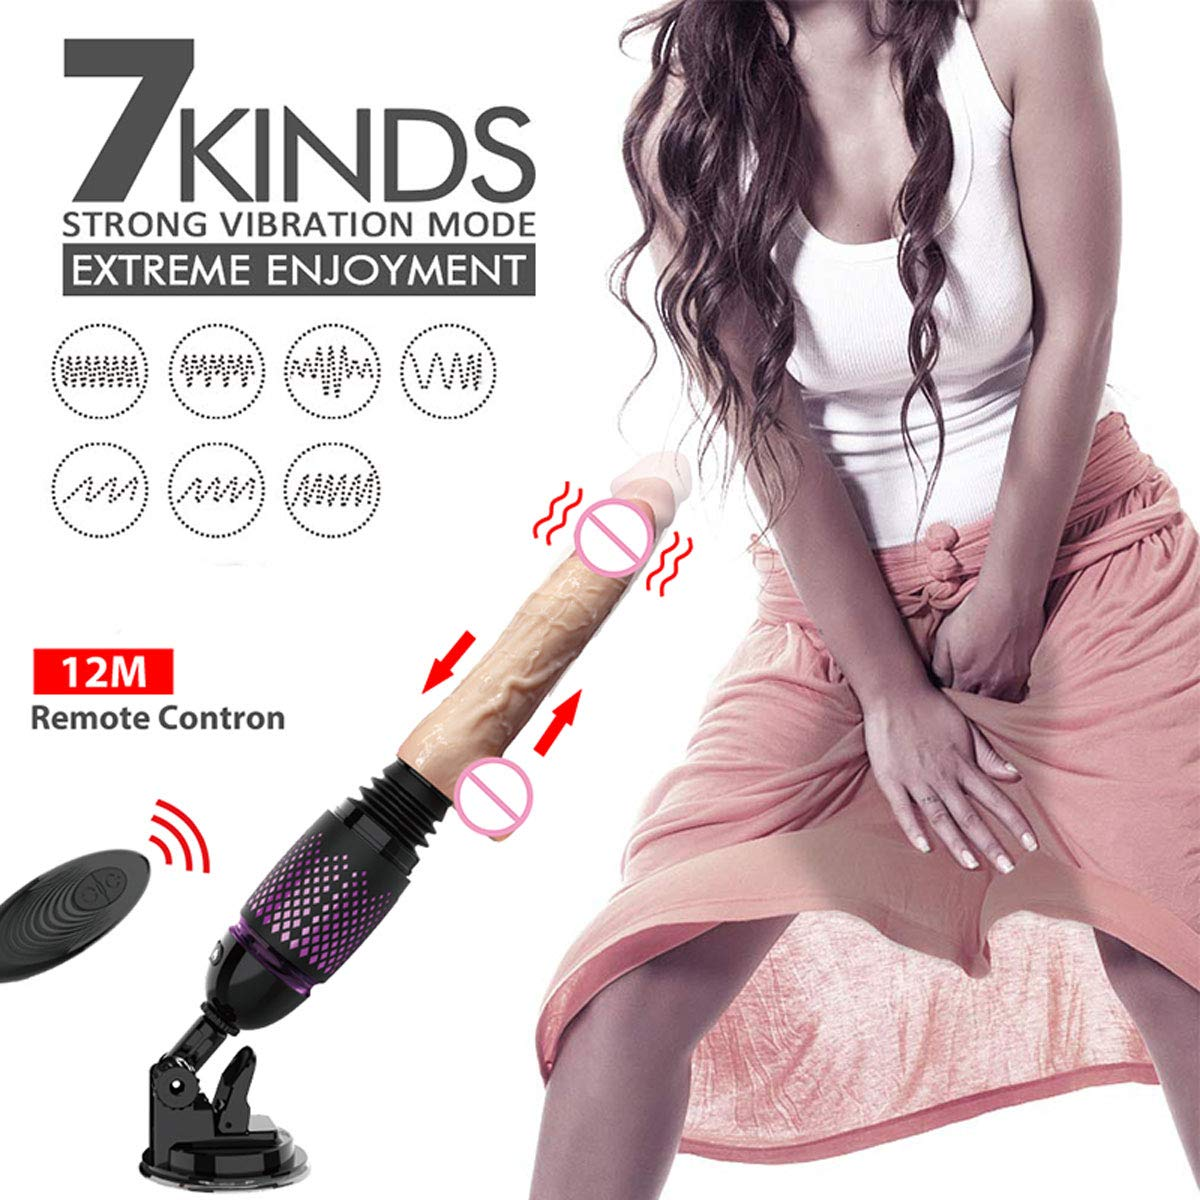 Fredorch Remote Control Sex Machine for Women, Thrusting Silicone Vibrator Rechargeable Automatic Love Machine Multi-Speed Fucking Machine with Two Vibrating Dildo (Package B) by Fredorch